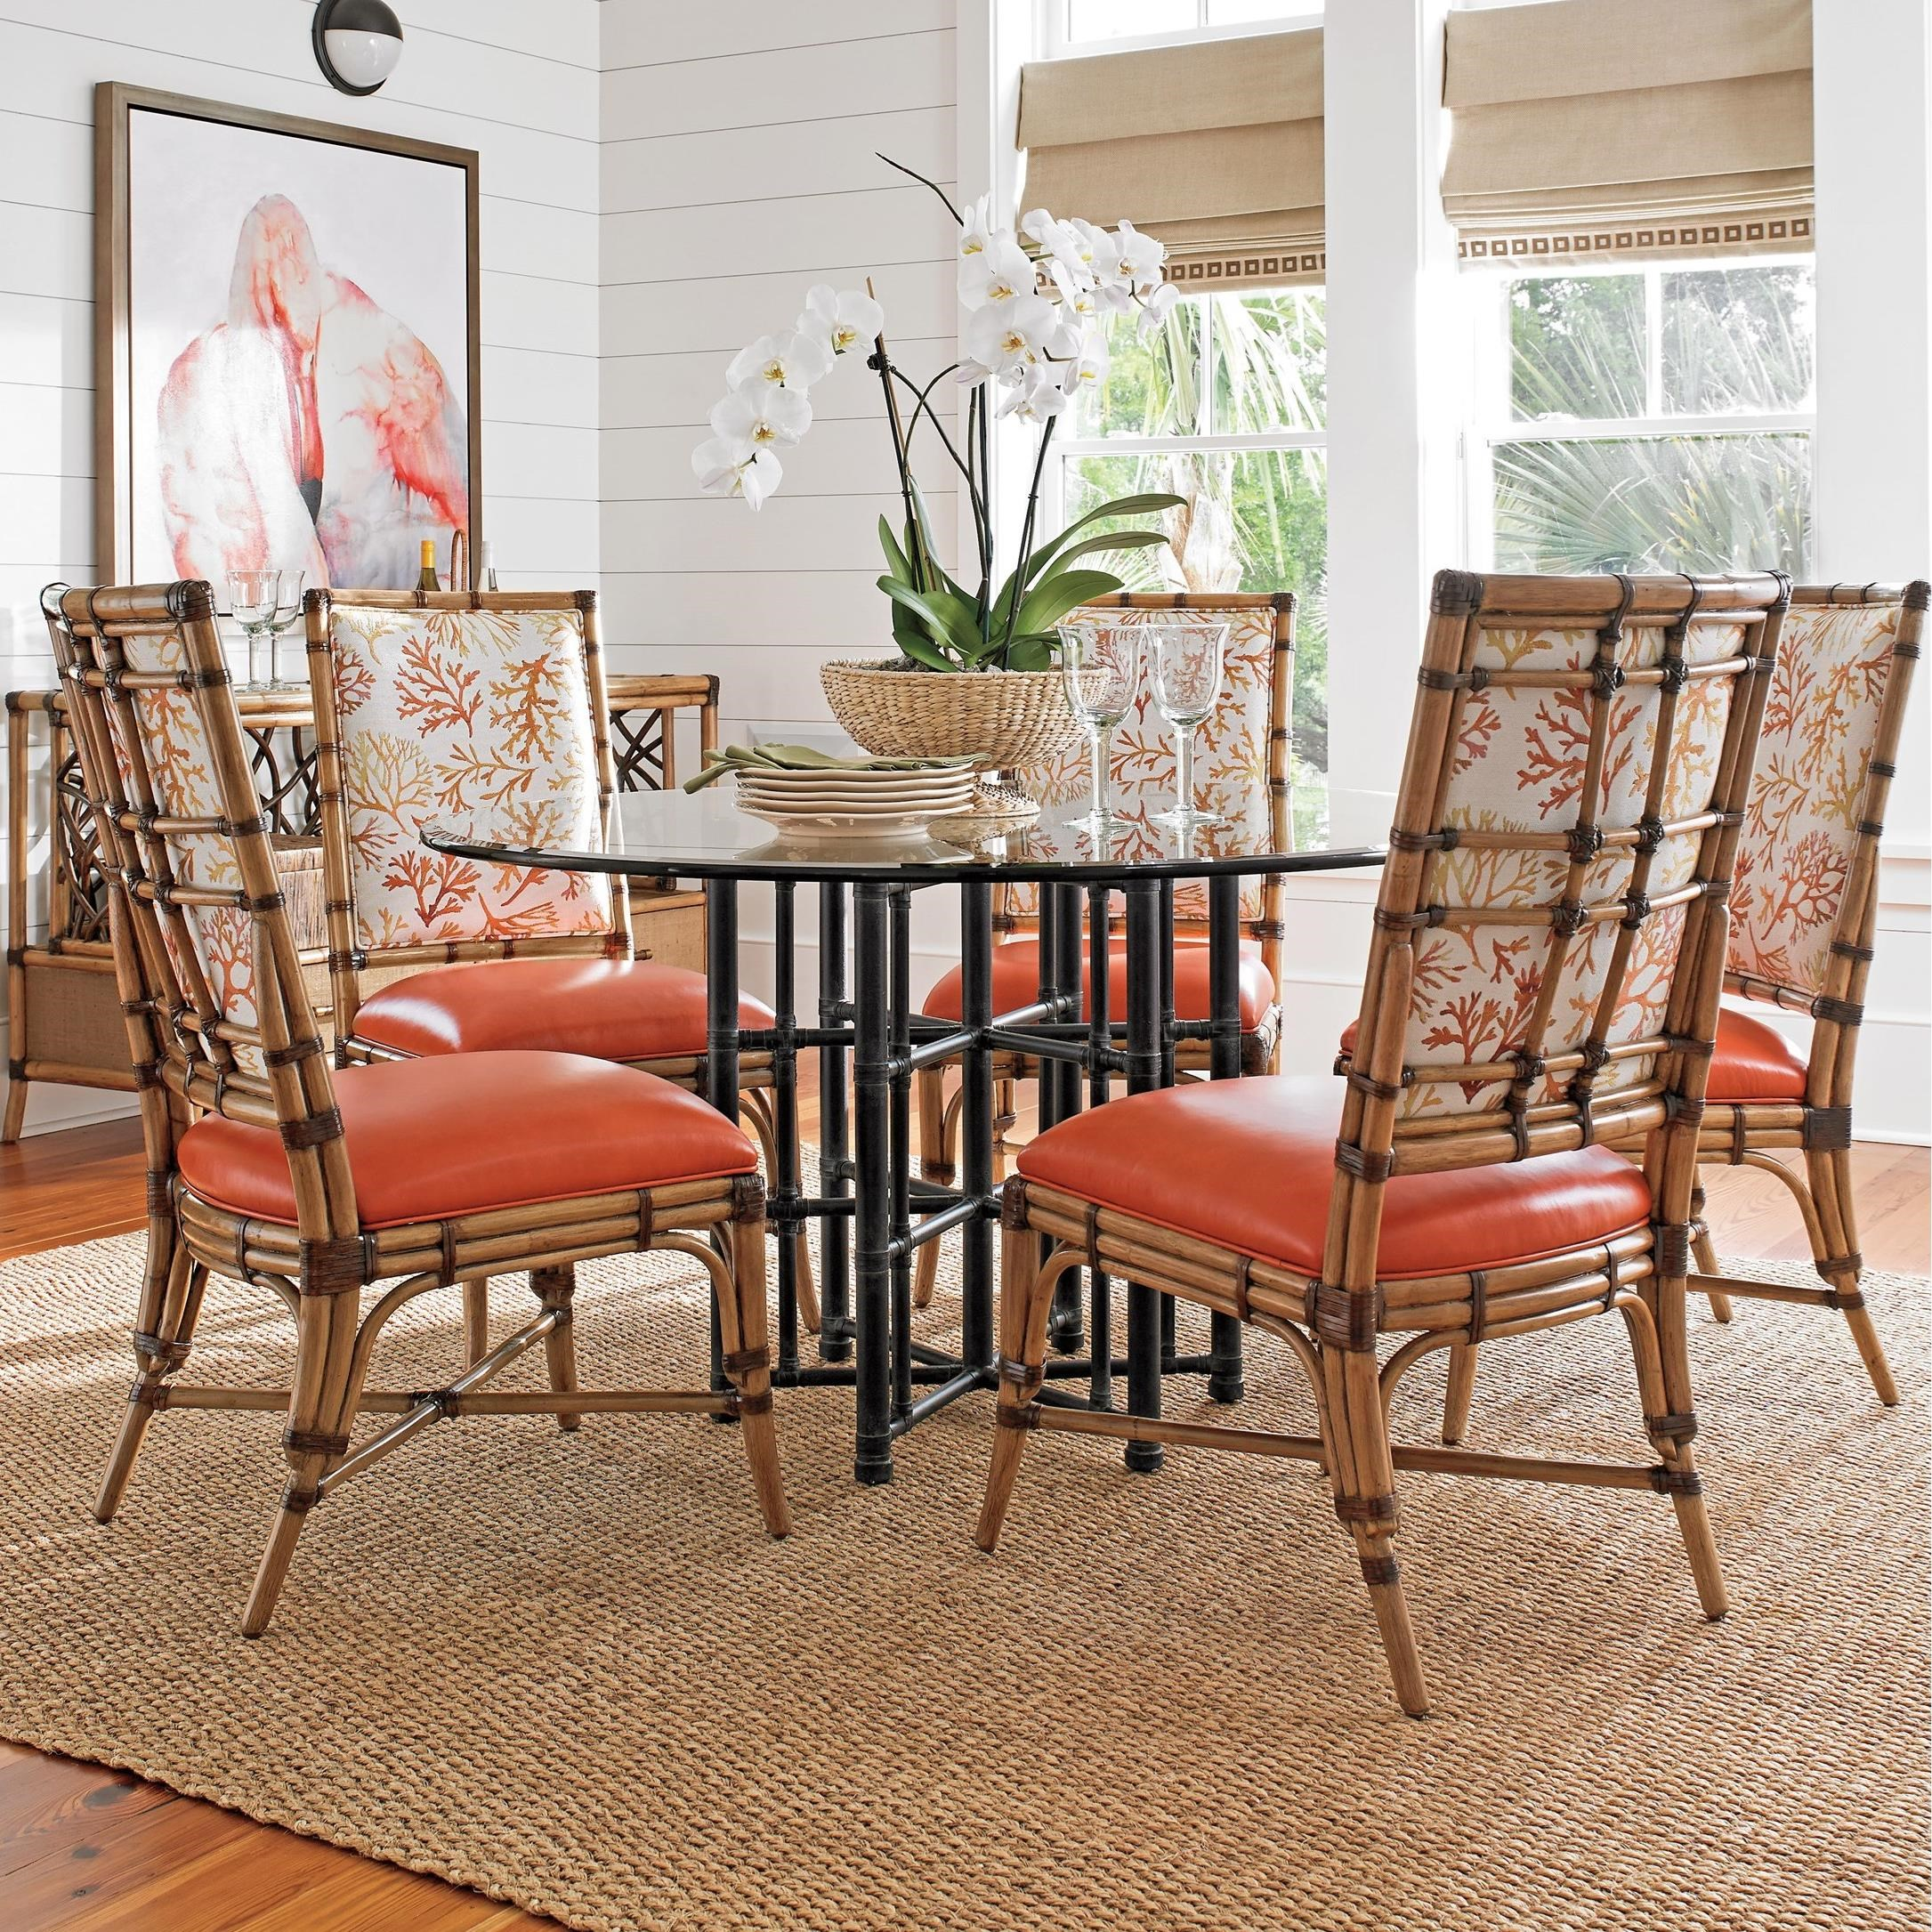 Twin Palms 6 Pc Dining Set by Tommy Bahama Home at Baer's Furniture